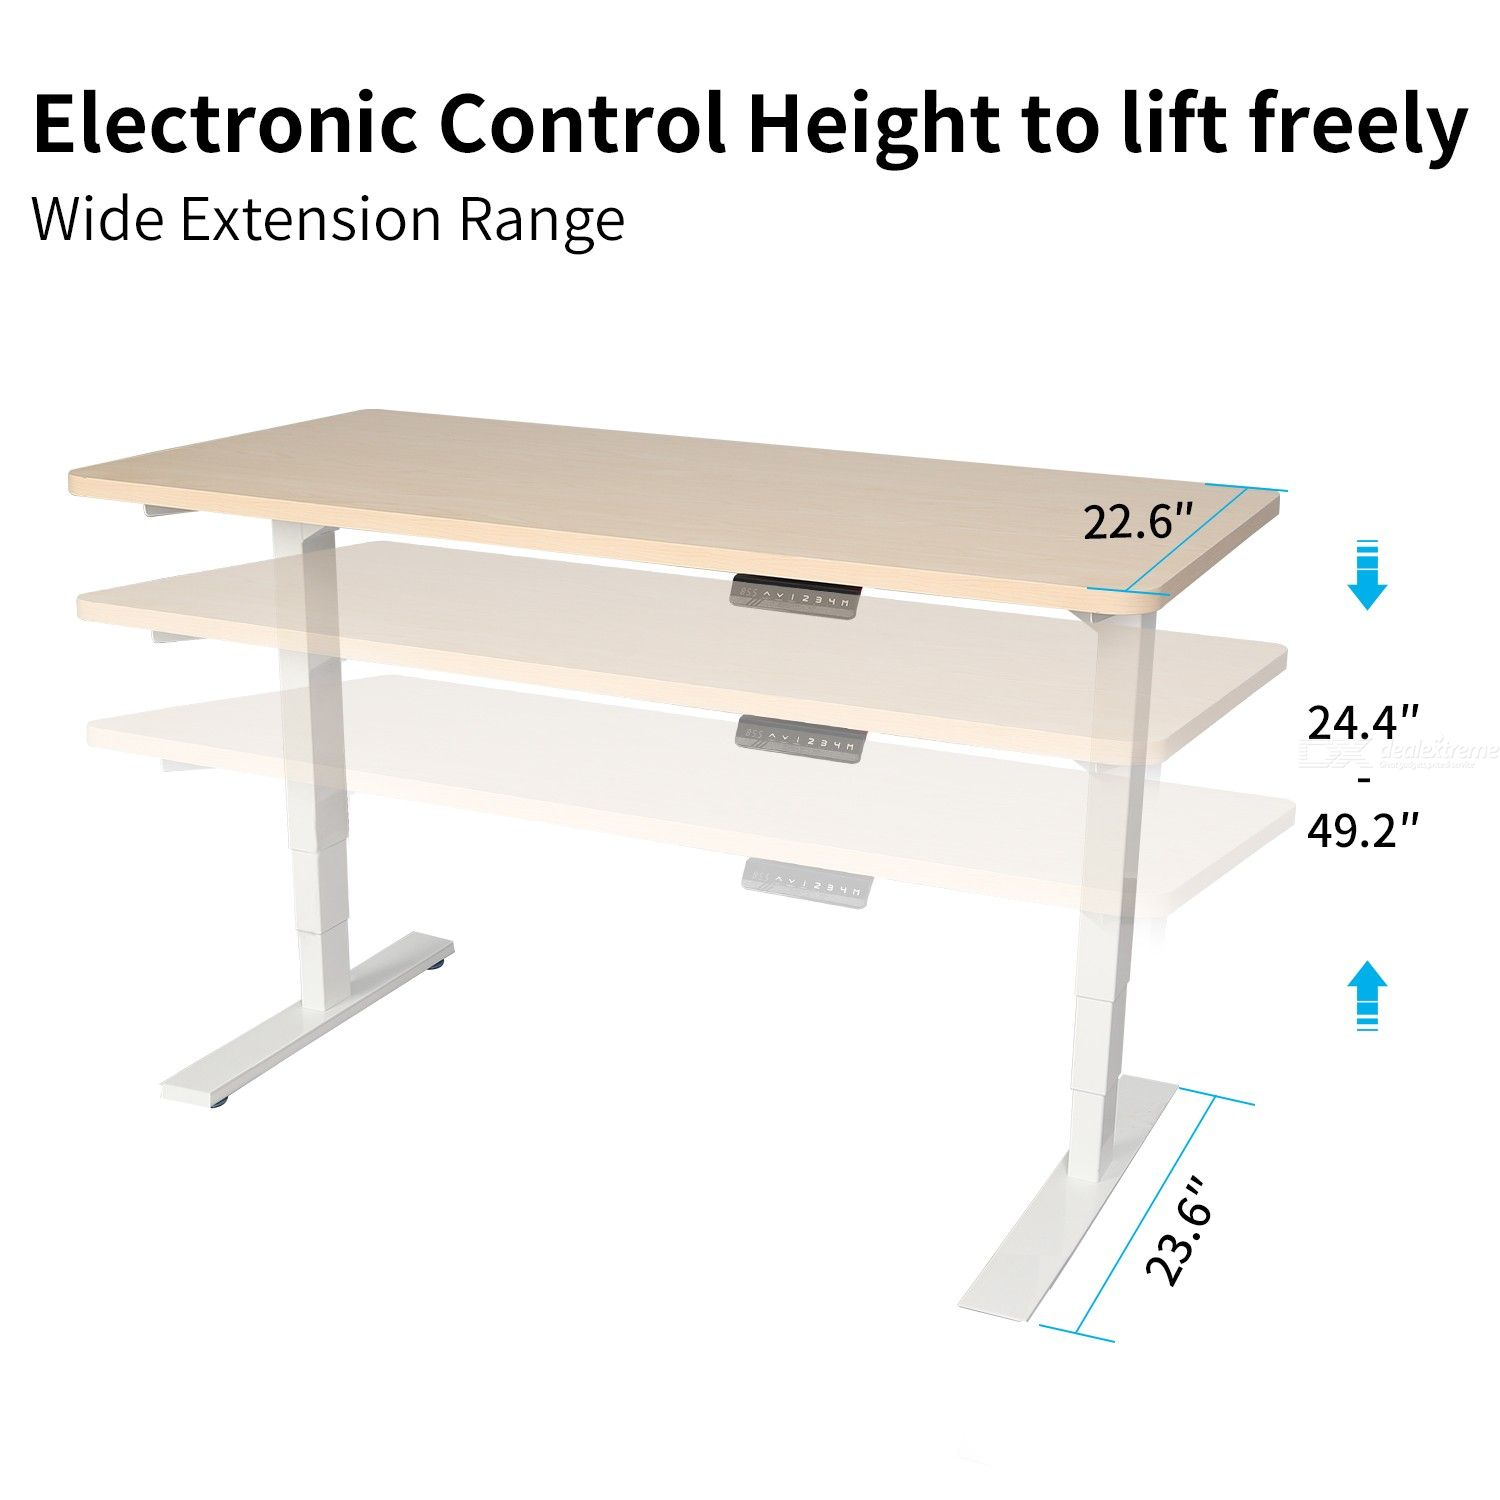 MAIDESITE Frame Electric Height Adjustable Table Frame with Three Sections ONLY Spain, Germany and France